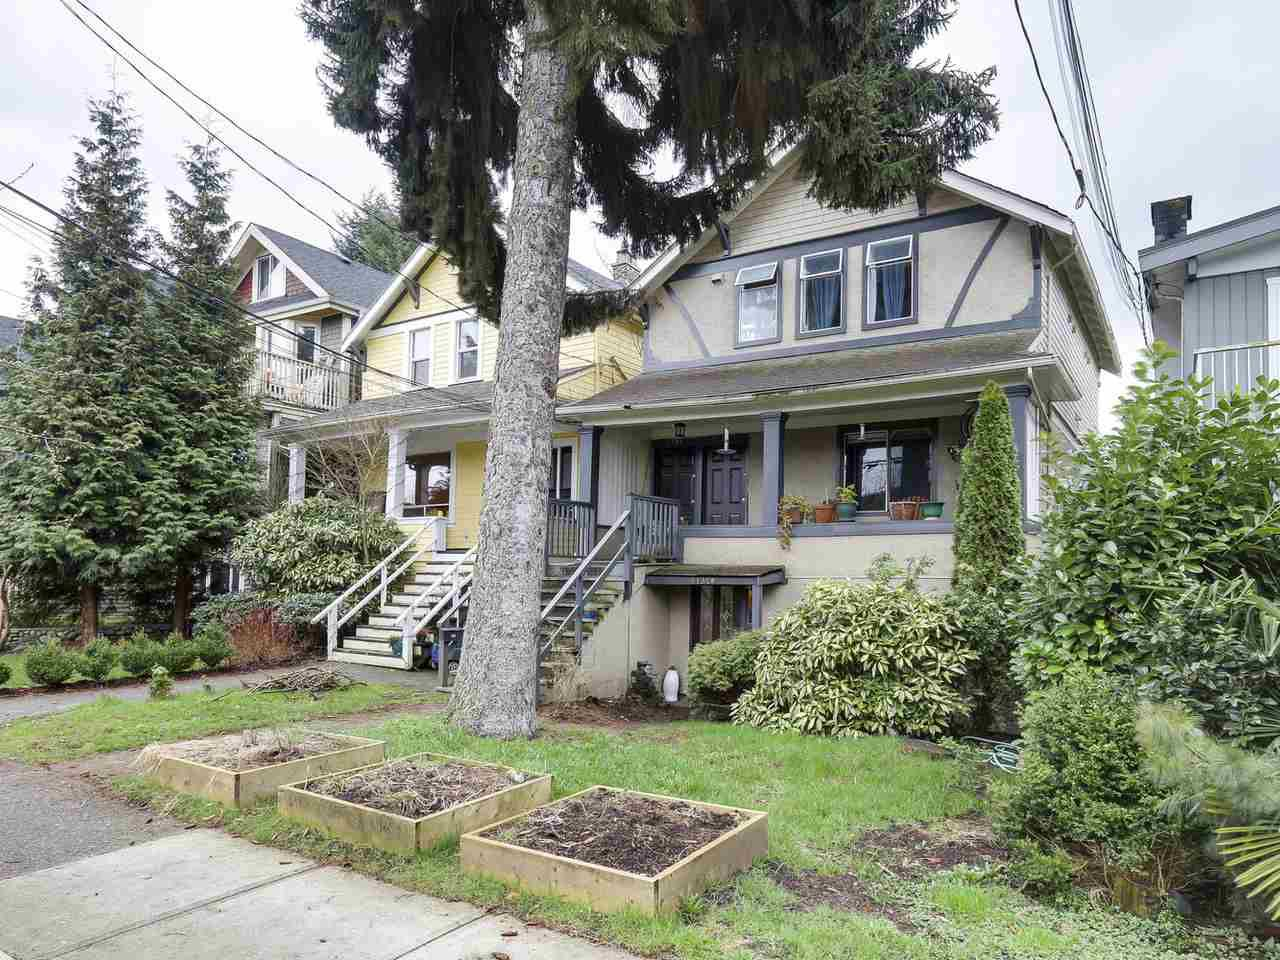 """Main Photo: 1182 E 13TH Avenue in Vancouver: Mount Pleasant VE House for sale in """"Mount Pleasant"""" (Vancouver East)  : MLS®# R2150040"""